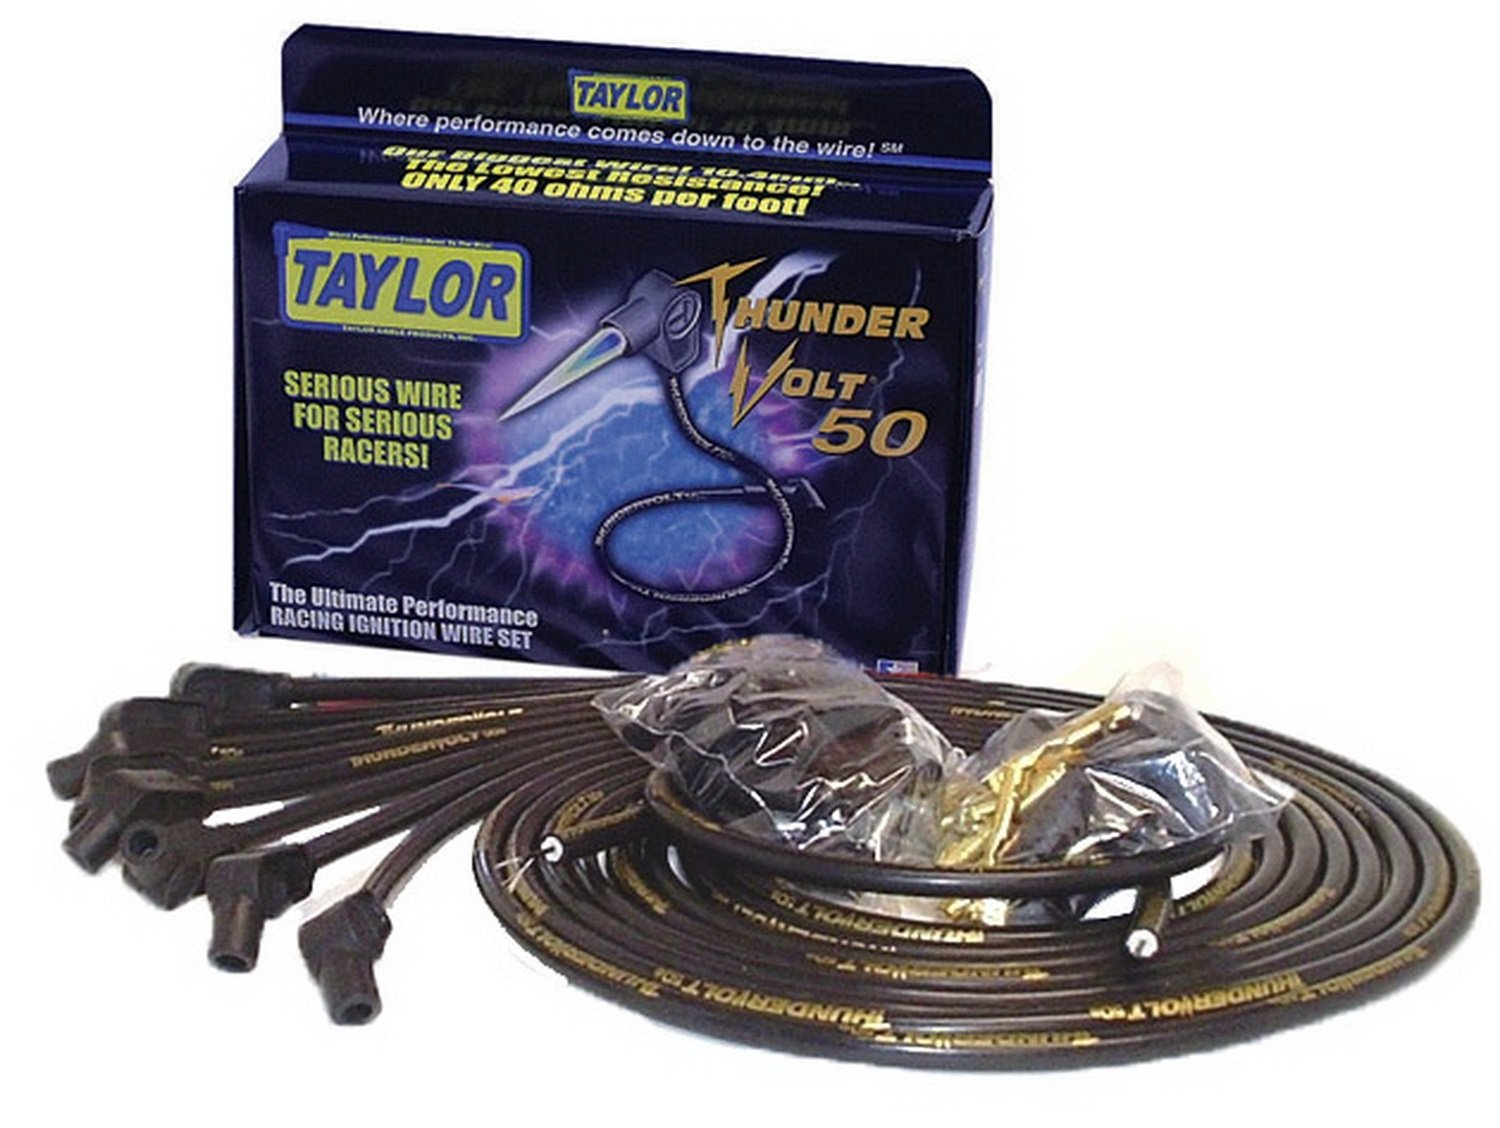 Taylor Cable 98053 Thundervolt 50 Series Ignition Wire Racing Wiring Set Automotive